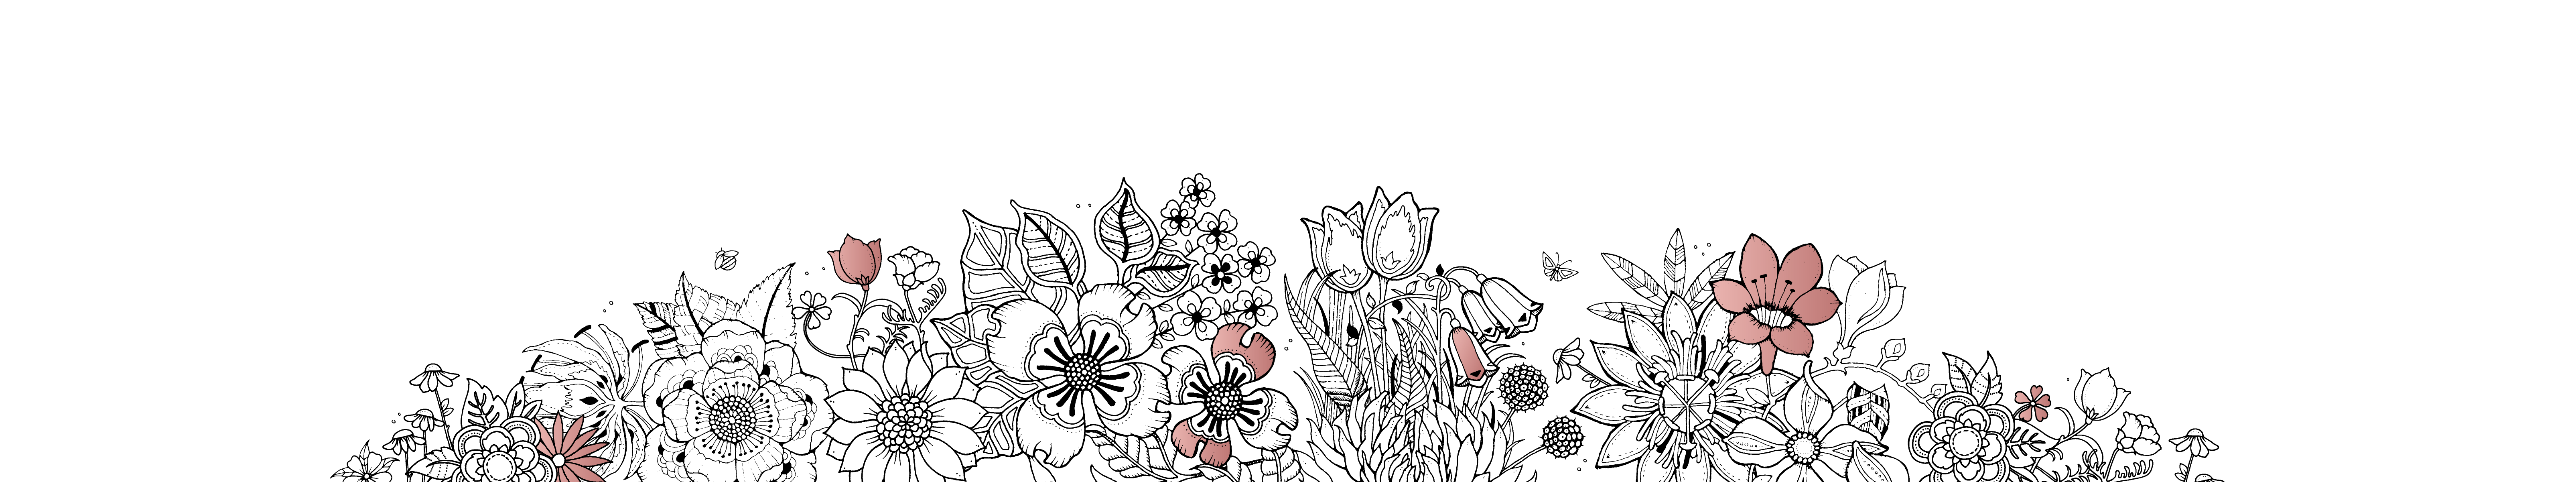 days of flowers. Challenger drawing colouring jpg free